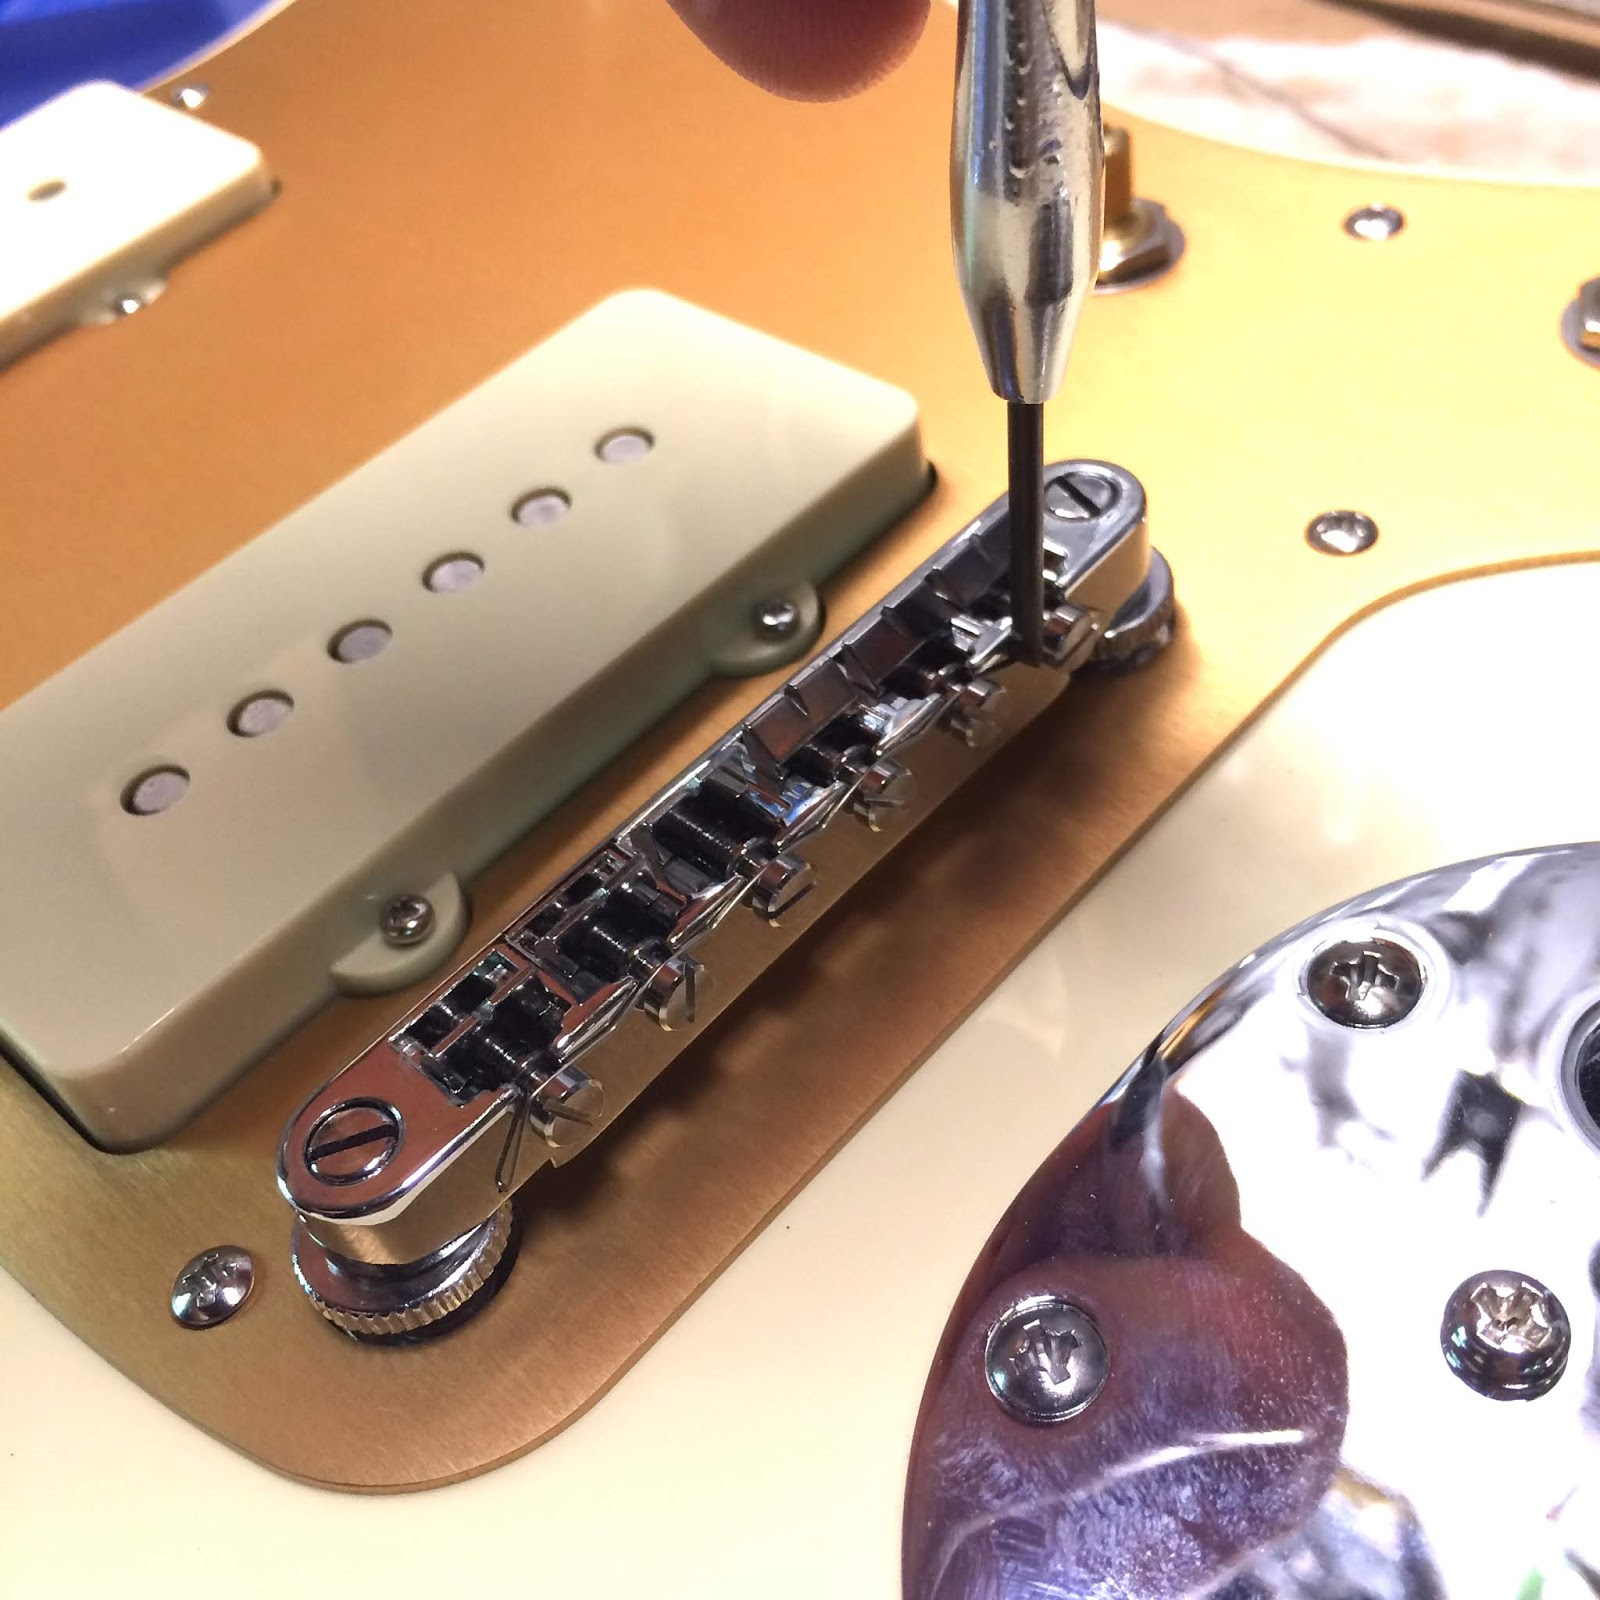 Schuyler Dean Nashville Pickups Handmade Guitars And Need A Teisco Type Guitar Wiring Diagram Telecaster Forum See The Full Video On Youtube For Before During After Of This Build